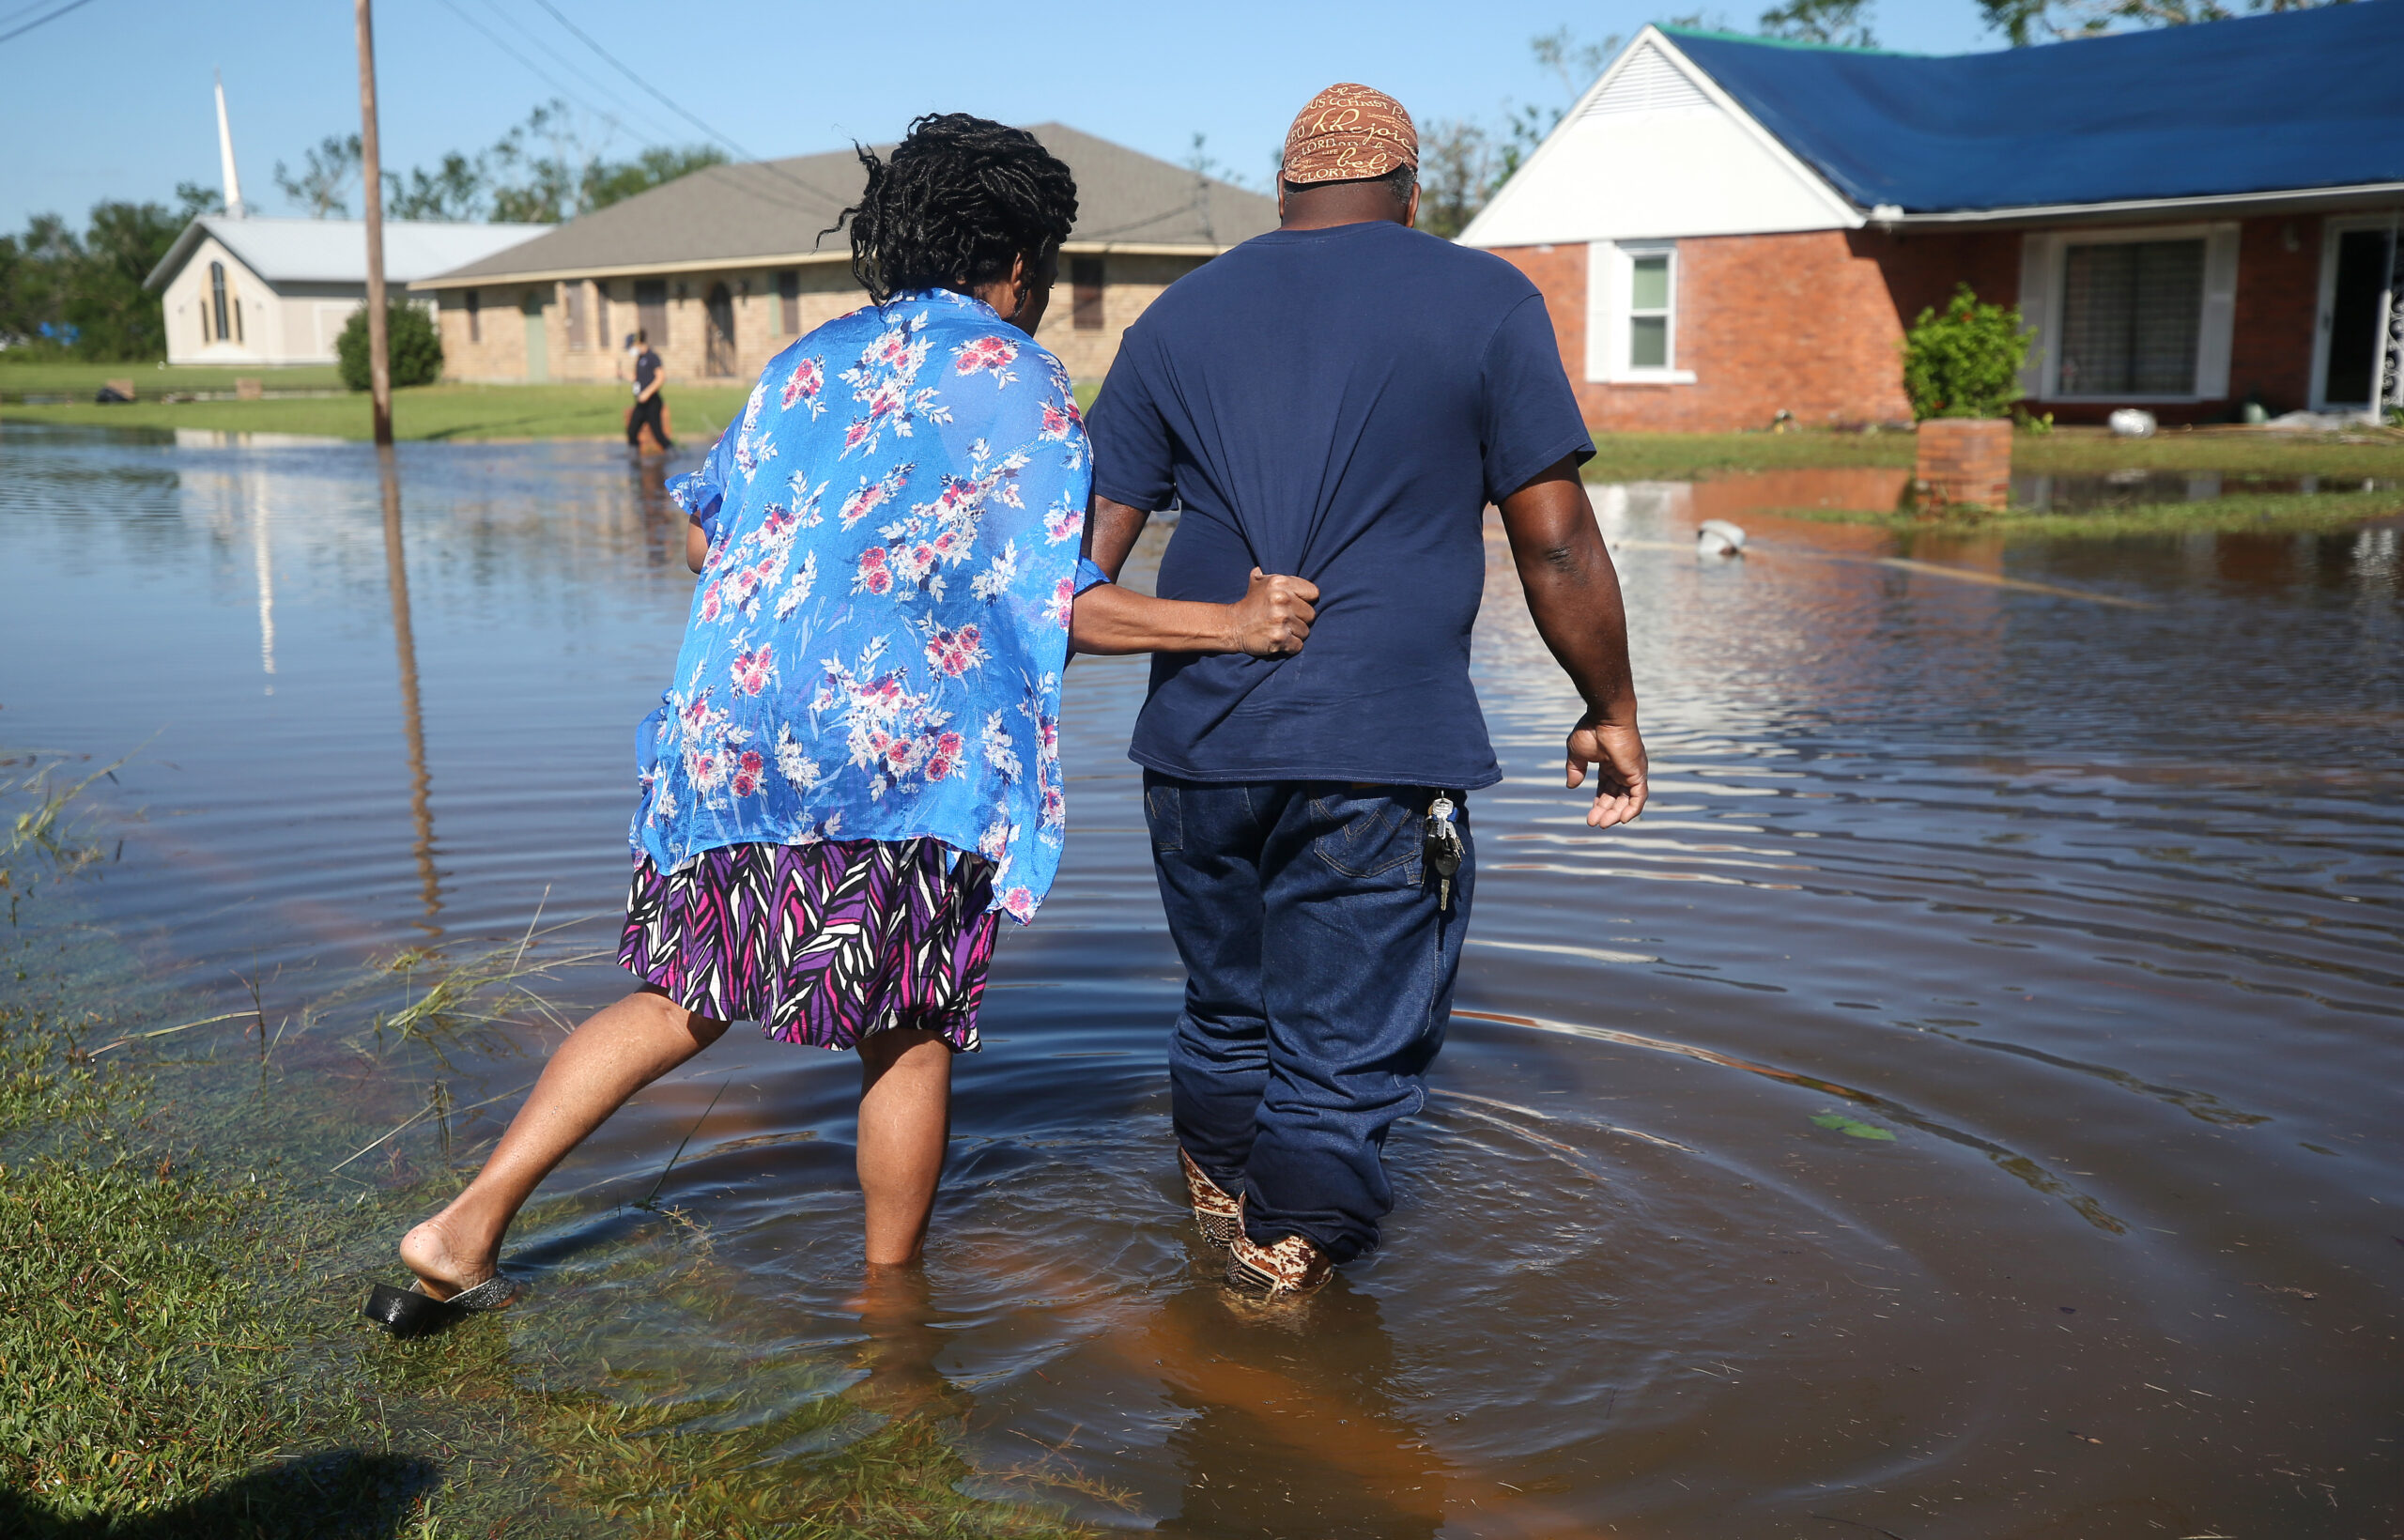 Patrick King and Soncia King walk through flood waters from Hurricane Delta toward their home (R) which they were still repairing from damage from Hurricane Laura on October 10, 2020 in Lake Charles, Louisiana. C